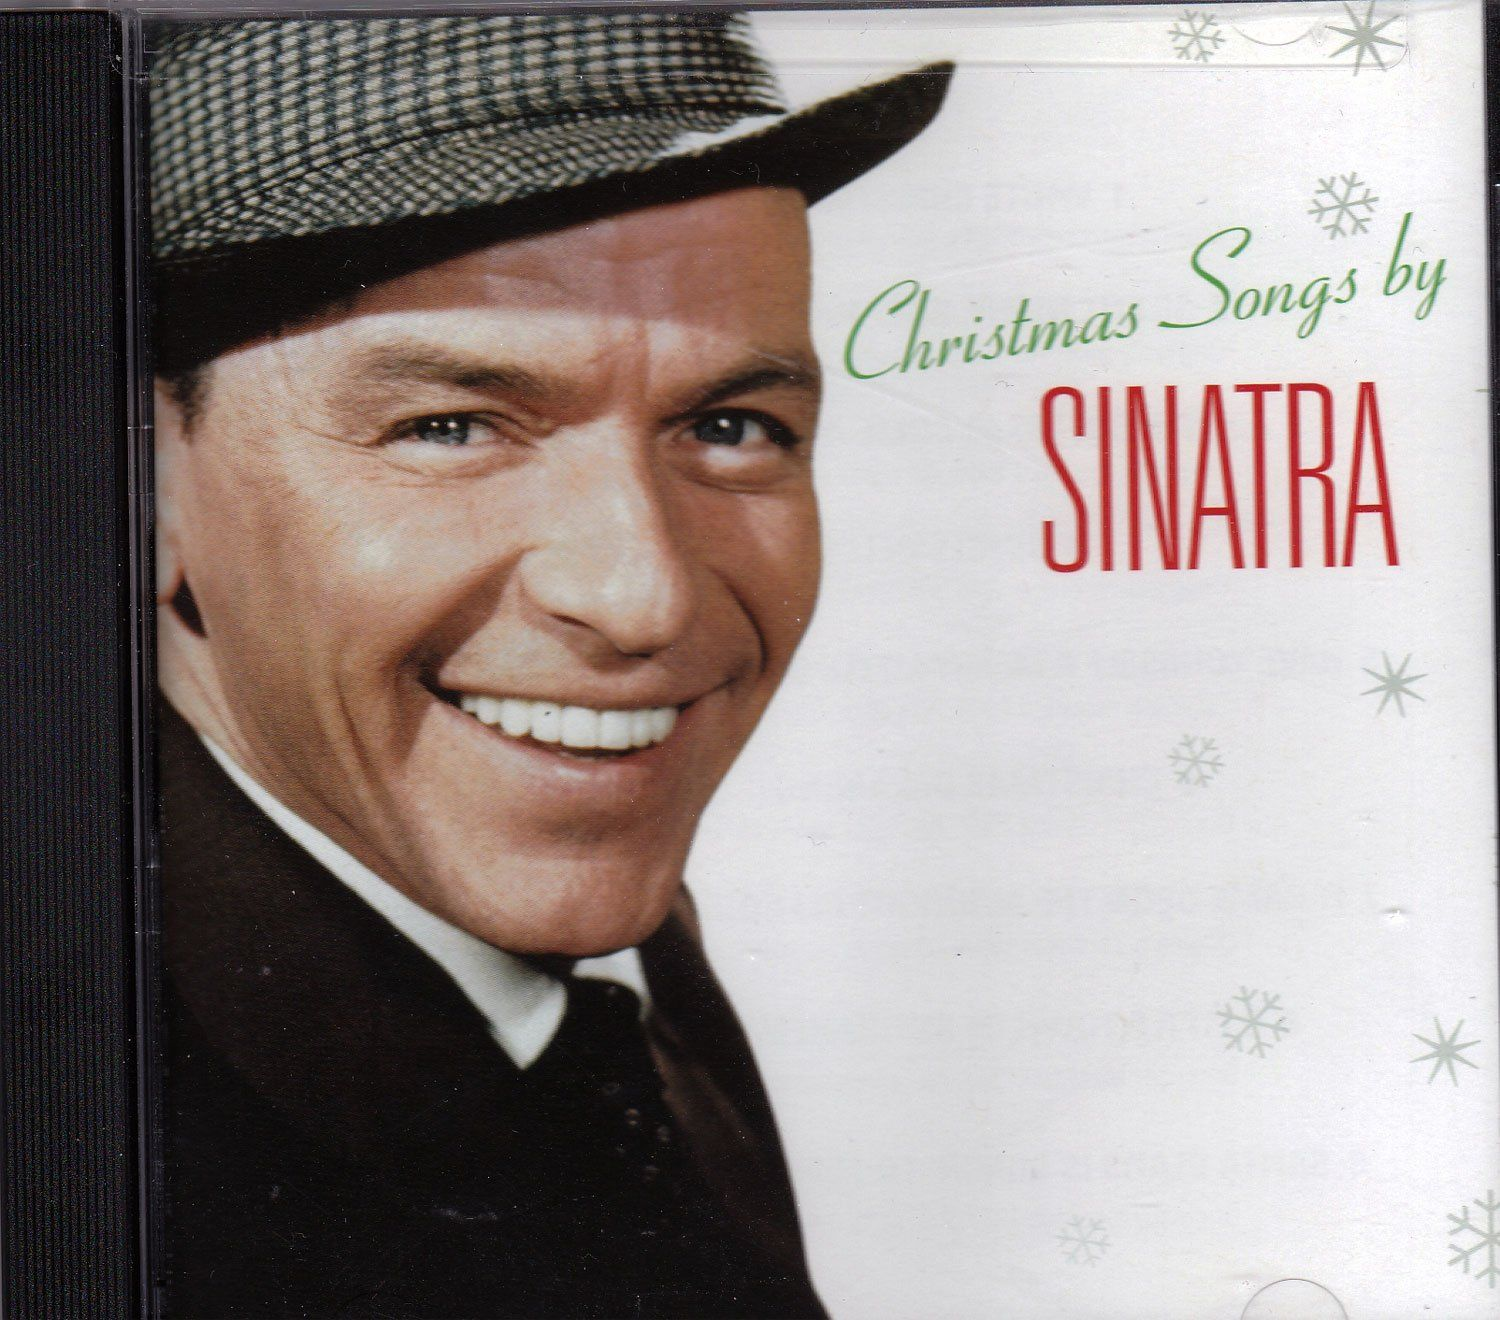 Frank sinatra christmas songs by sinatra in music cdus